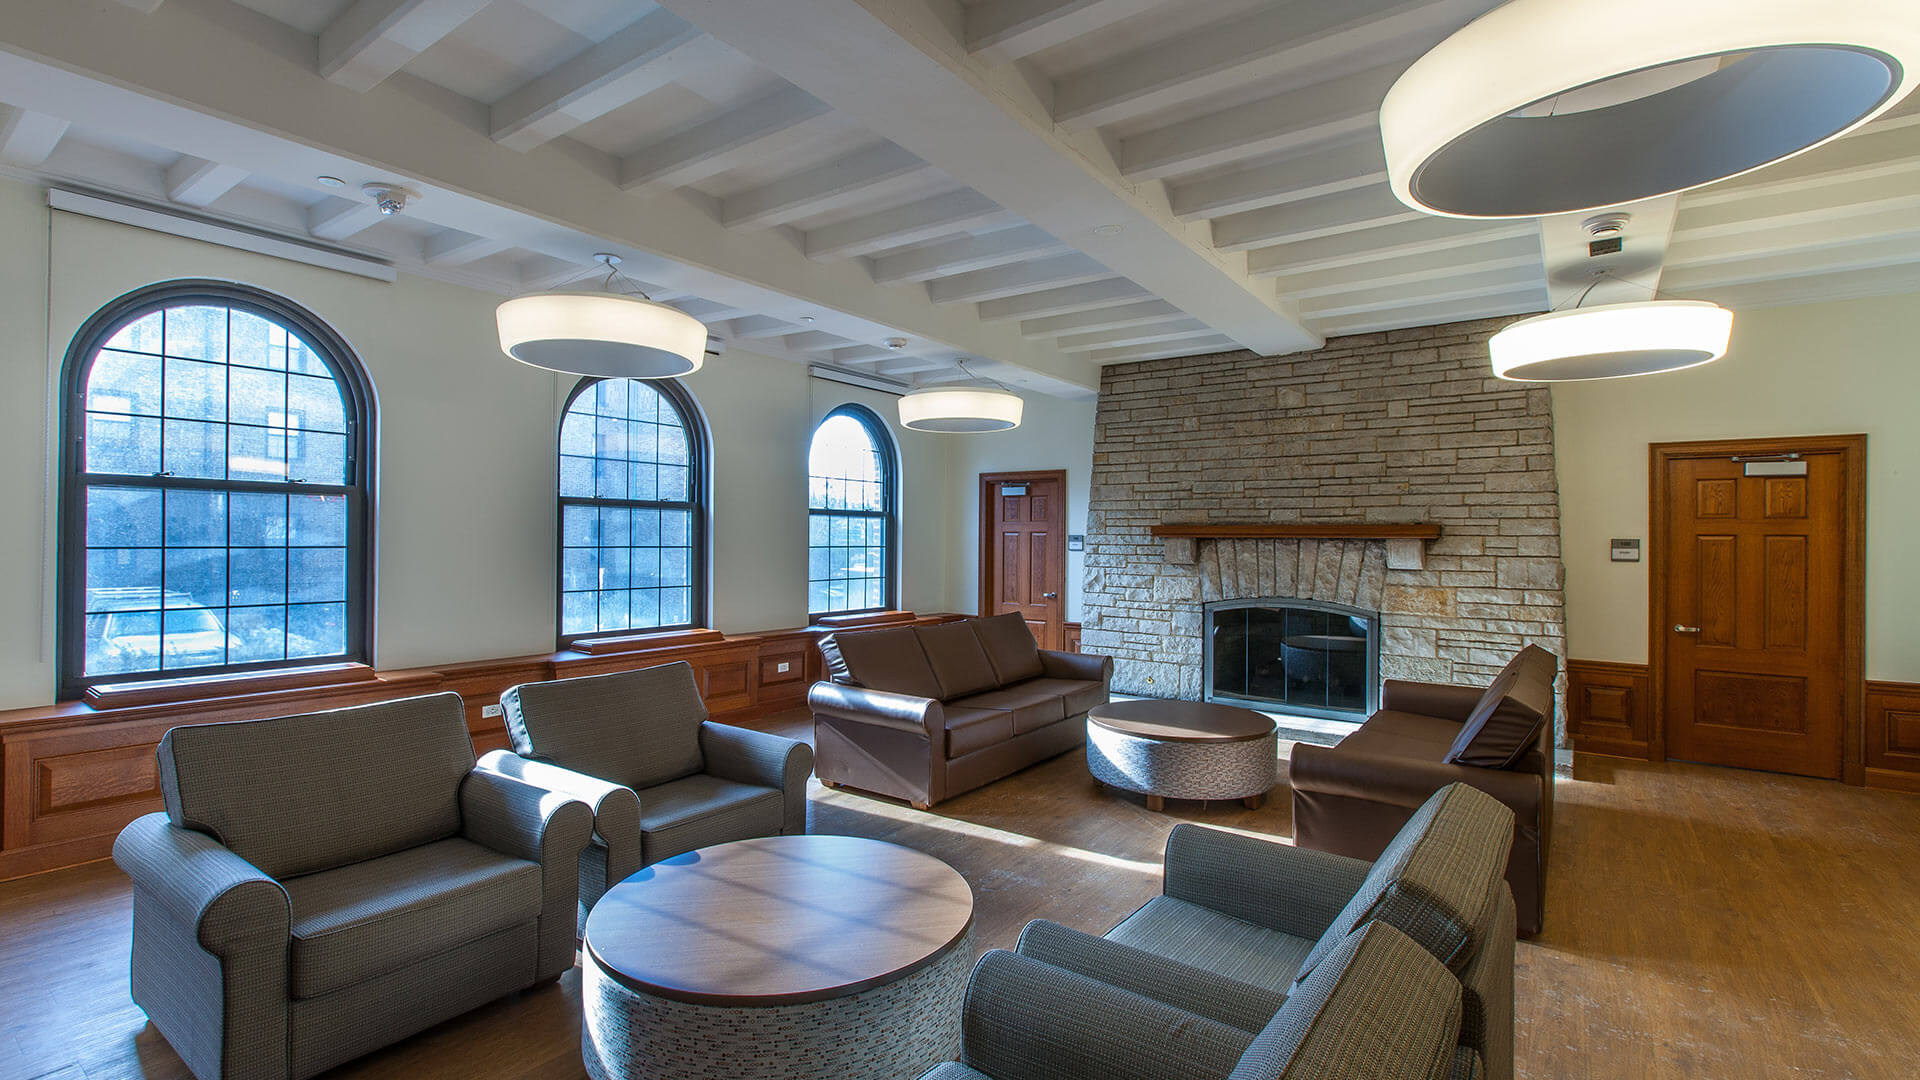 Northwestern University - Goodrich Hall Renovation